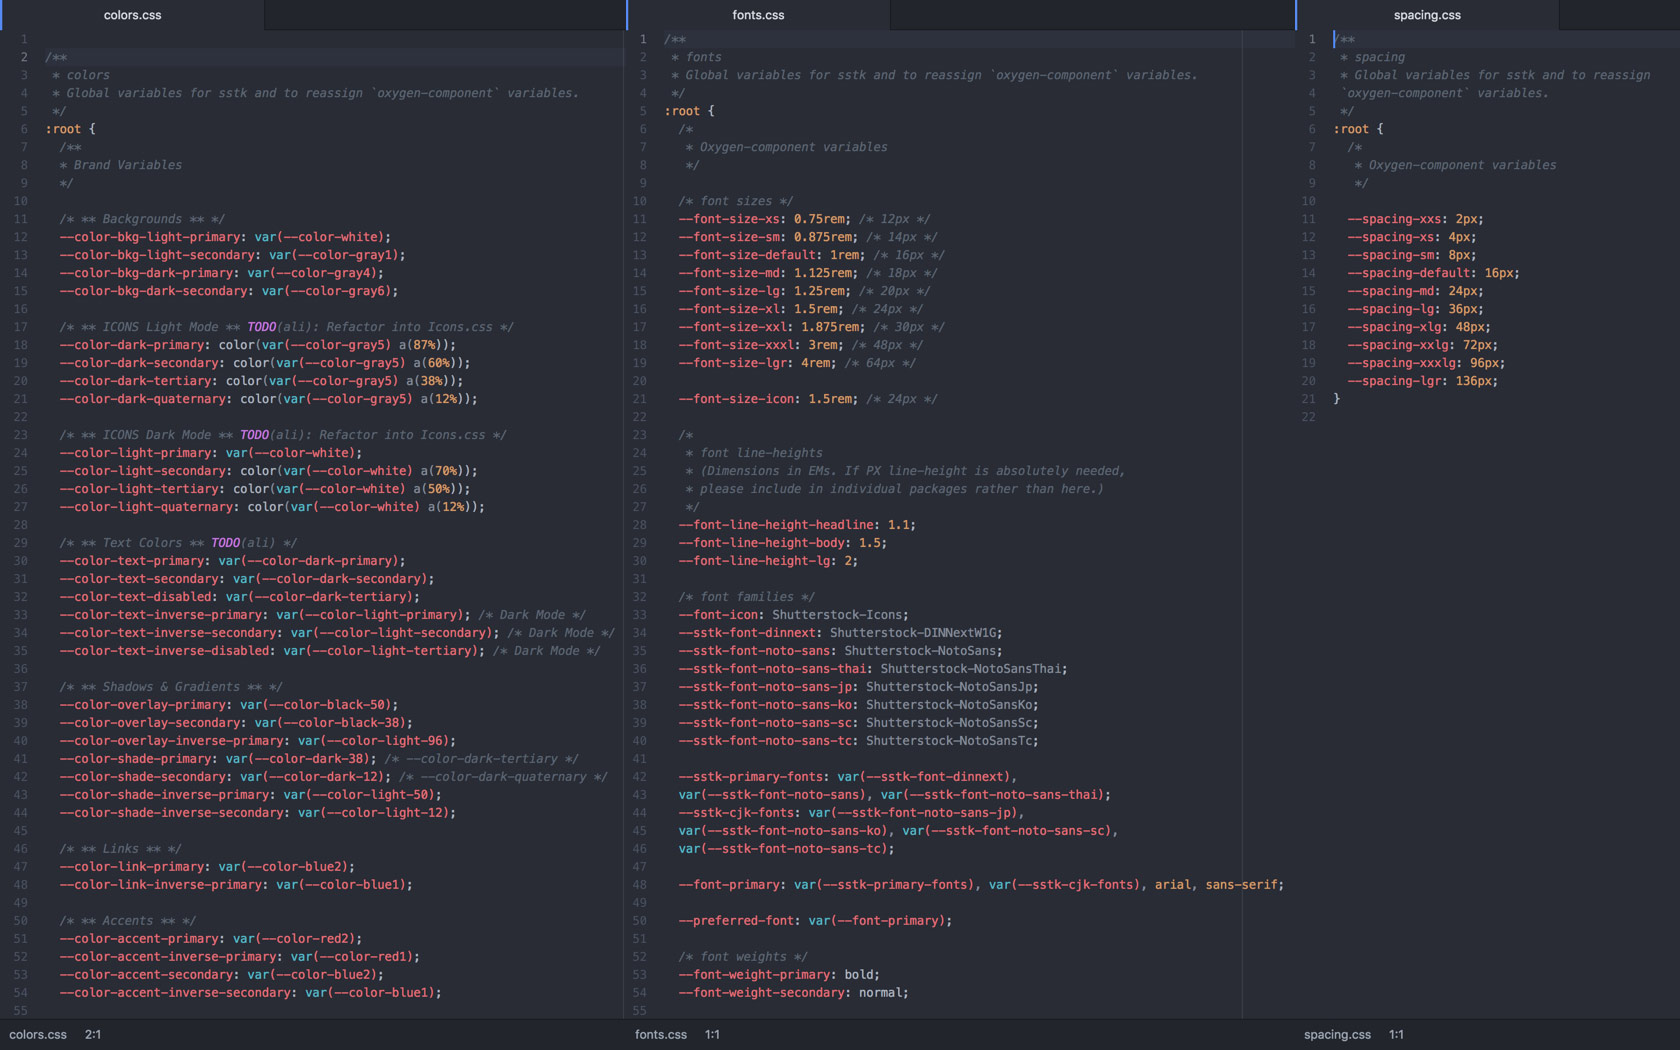 brand_variables_css